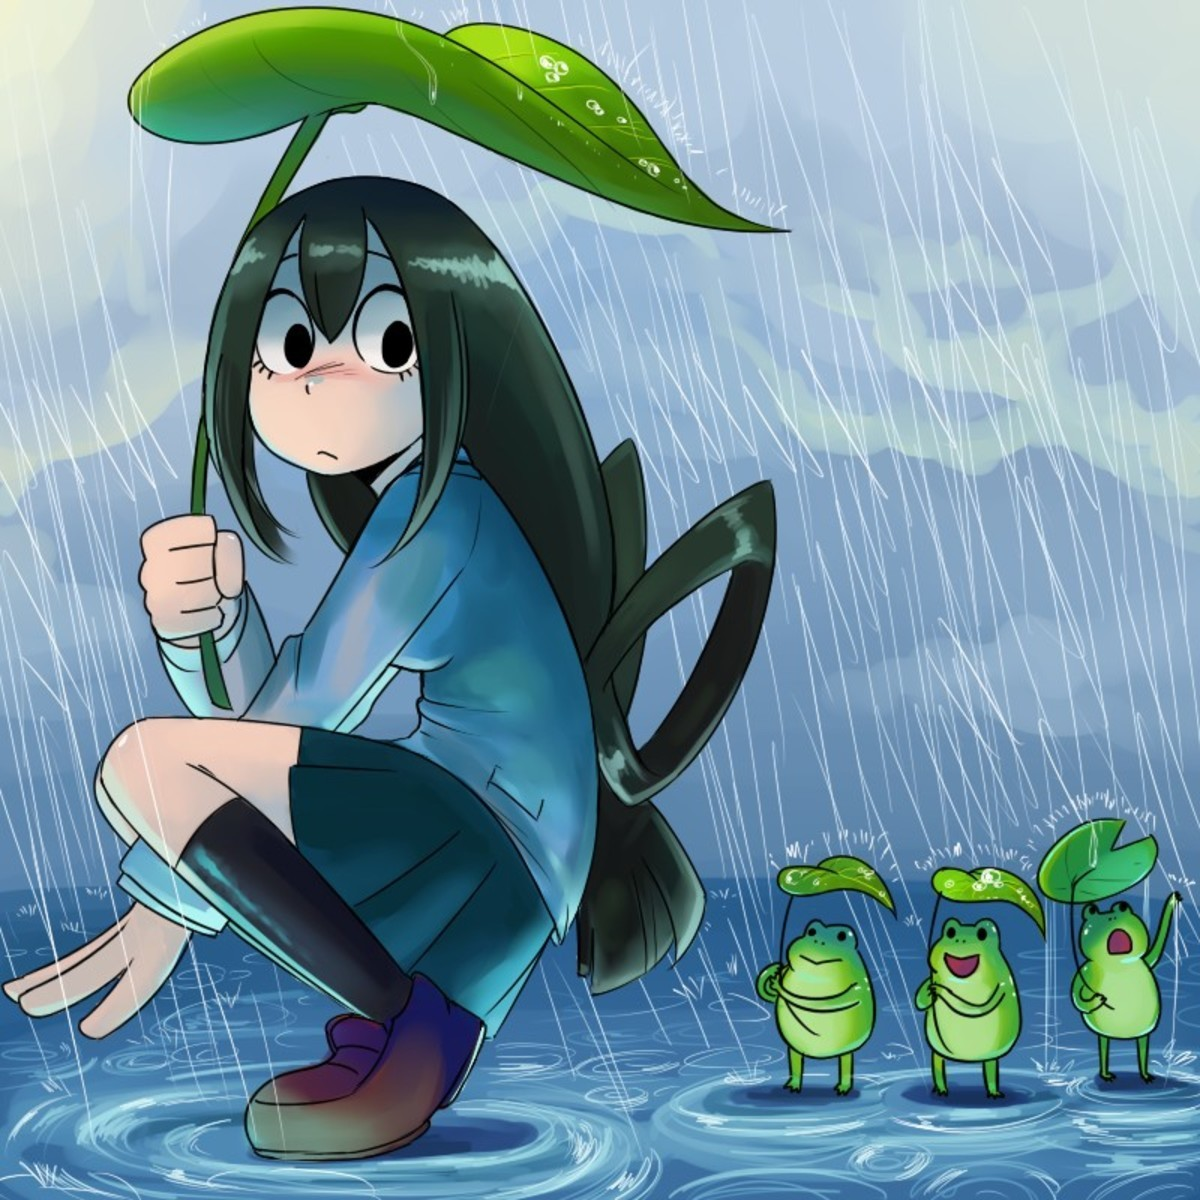 Daily Tsuyu 19. join list: BestgirlTsuyu (452 subs)Mention Clicks: 33826Msgs Sent: 199856Mention History.. cute